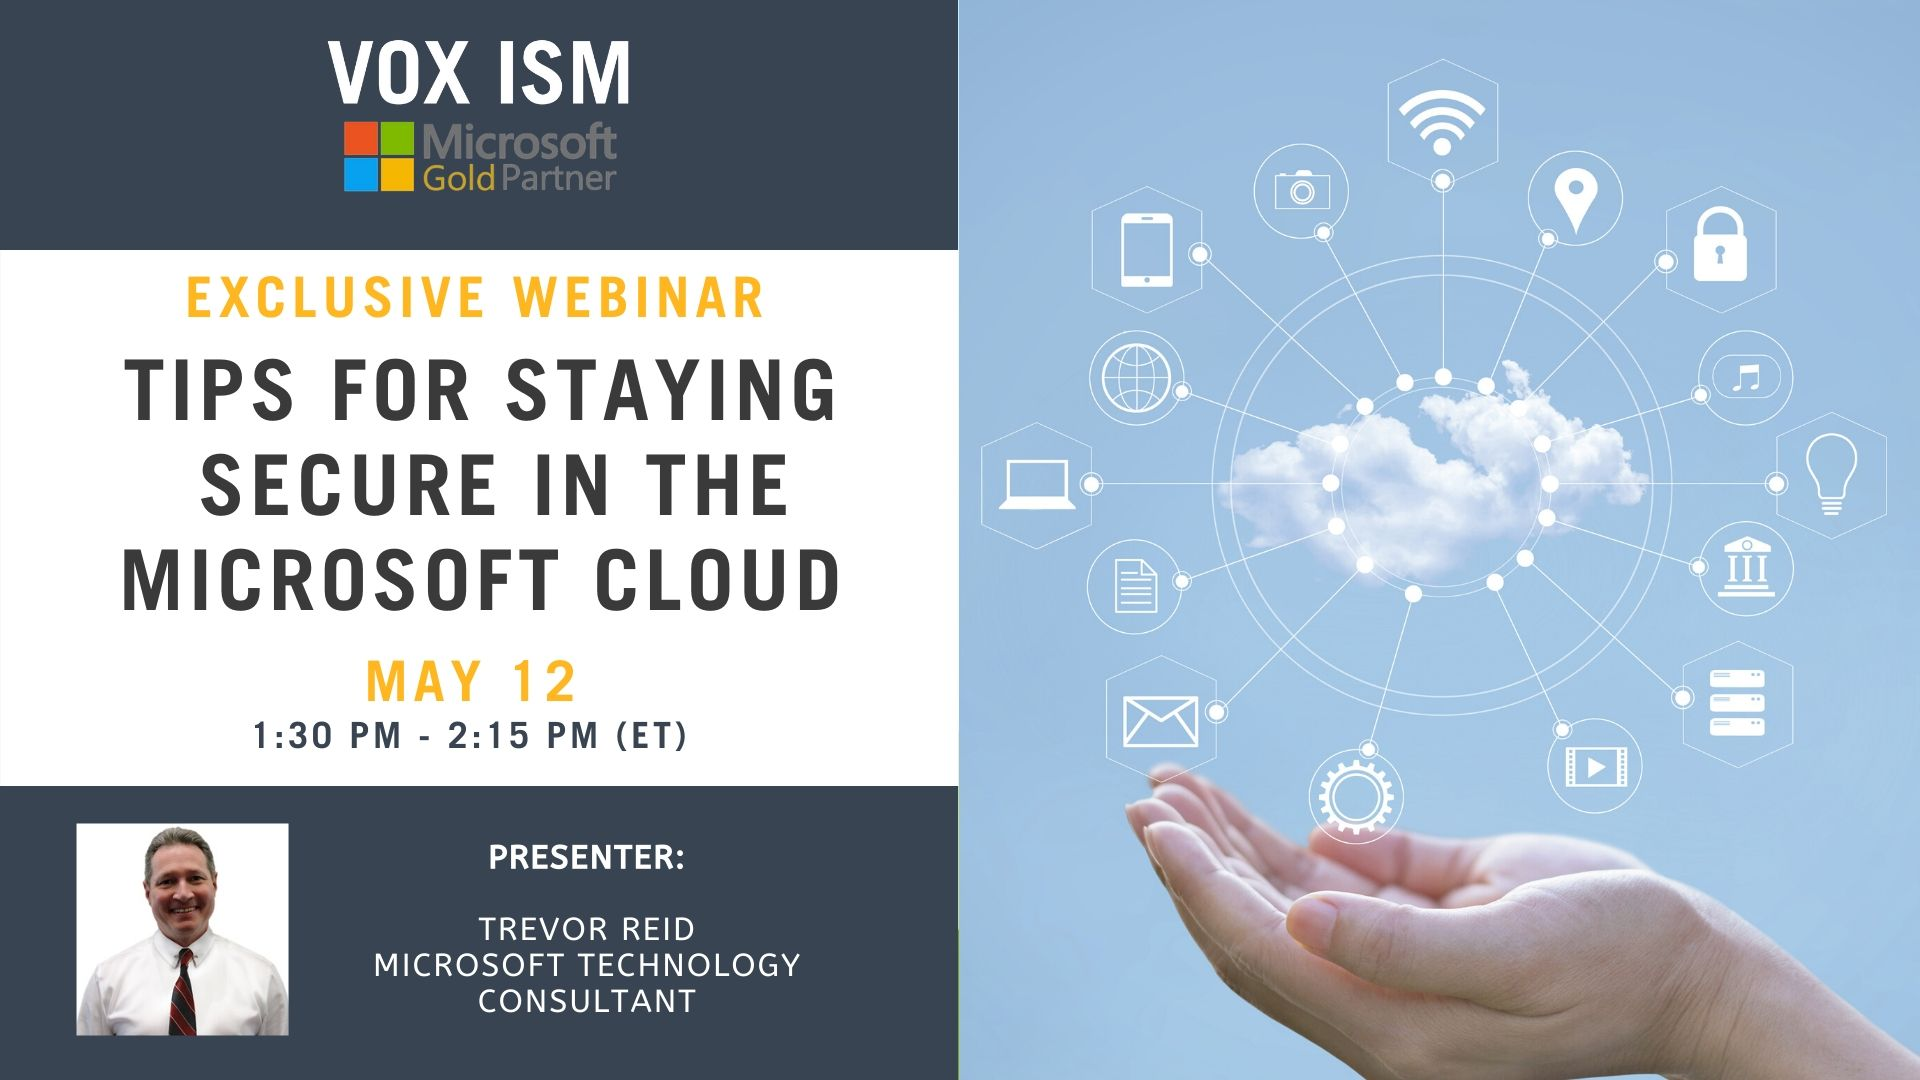 Tips for Staying Secure in the Microsoft Cloud - May 12 - Webinar VOX ISM